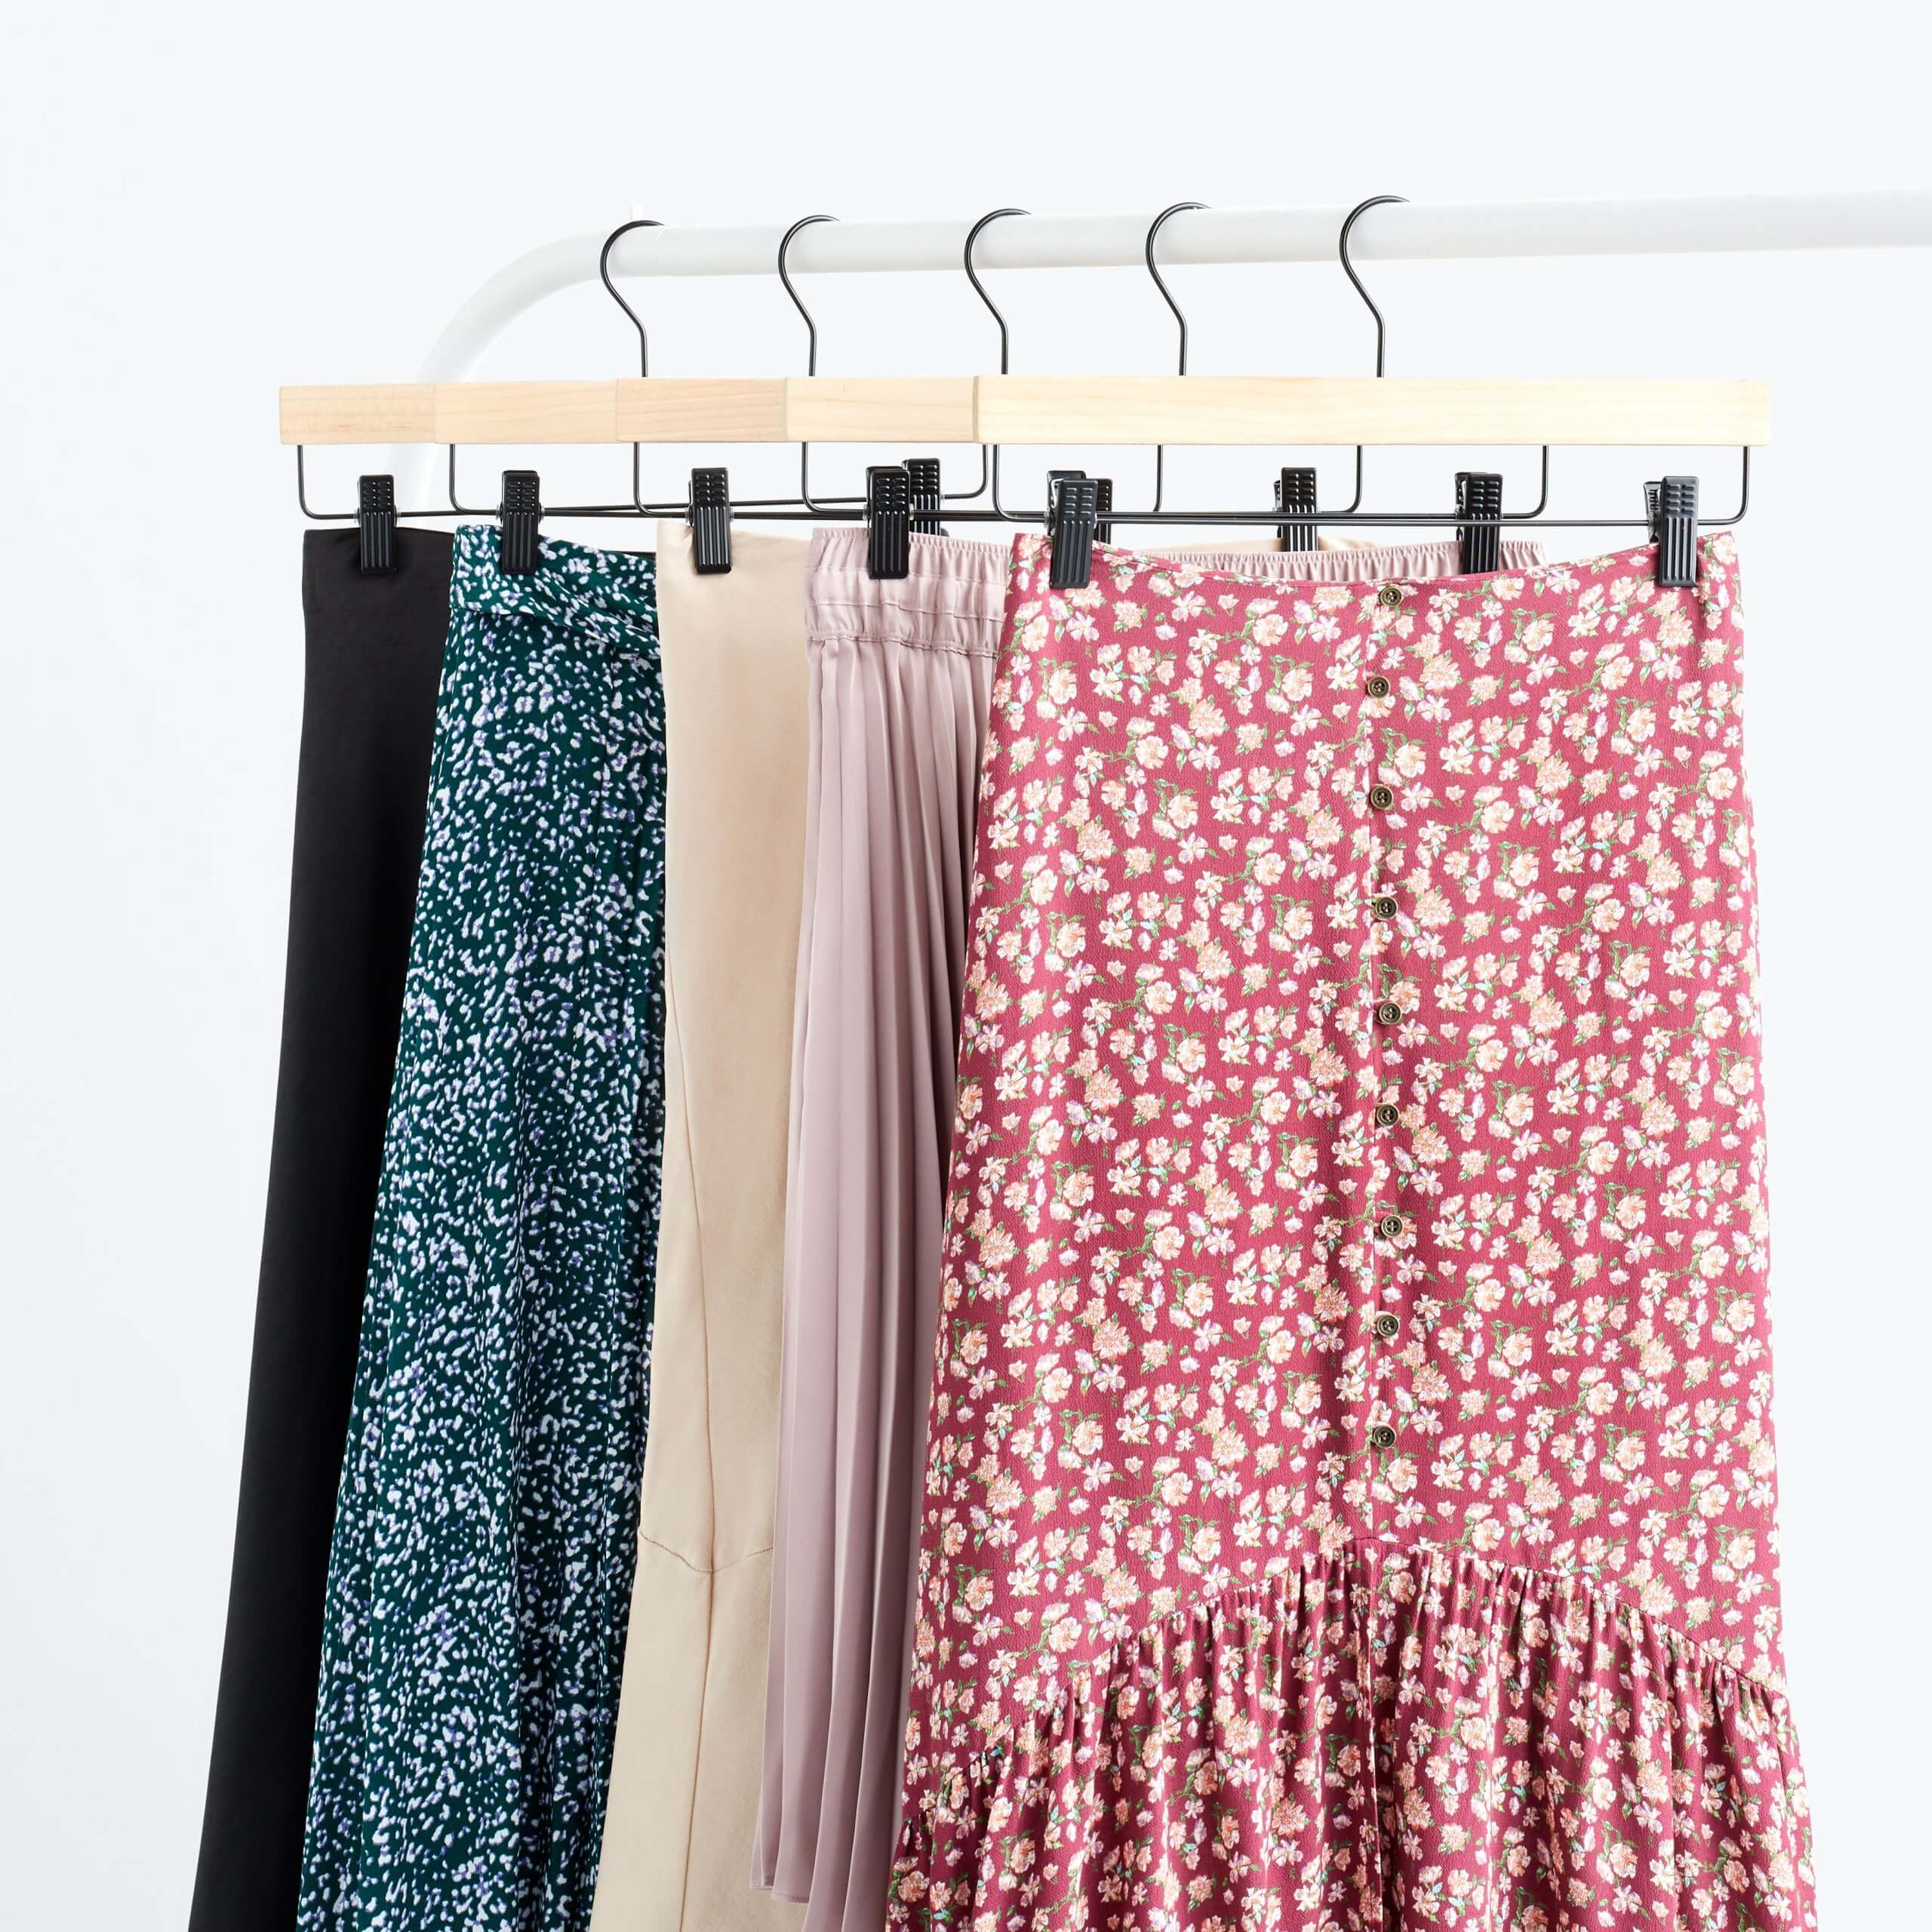 Stitch Fix Women's rack image of skirts in red floral, blush pink, beige, teal floral and black on wooden hangers.